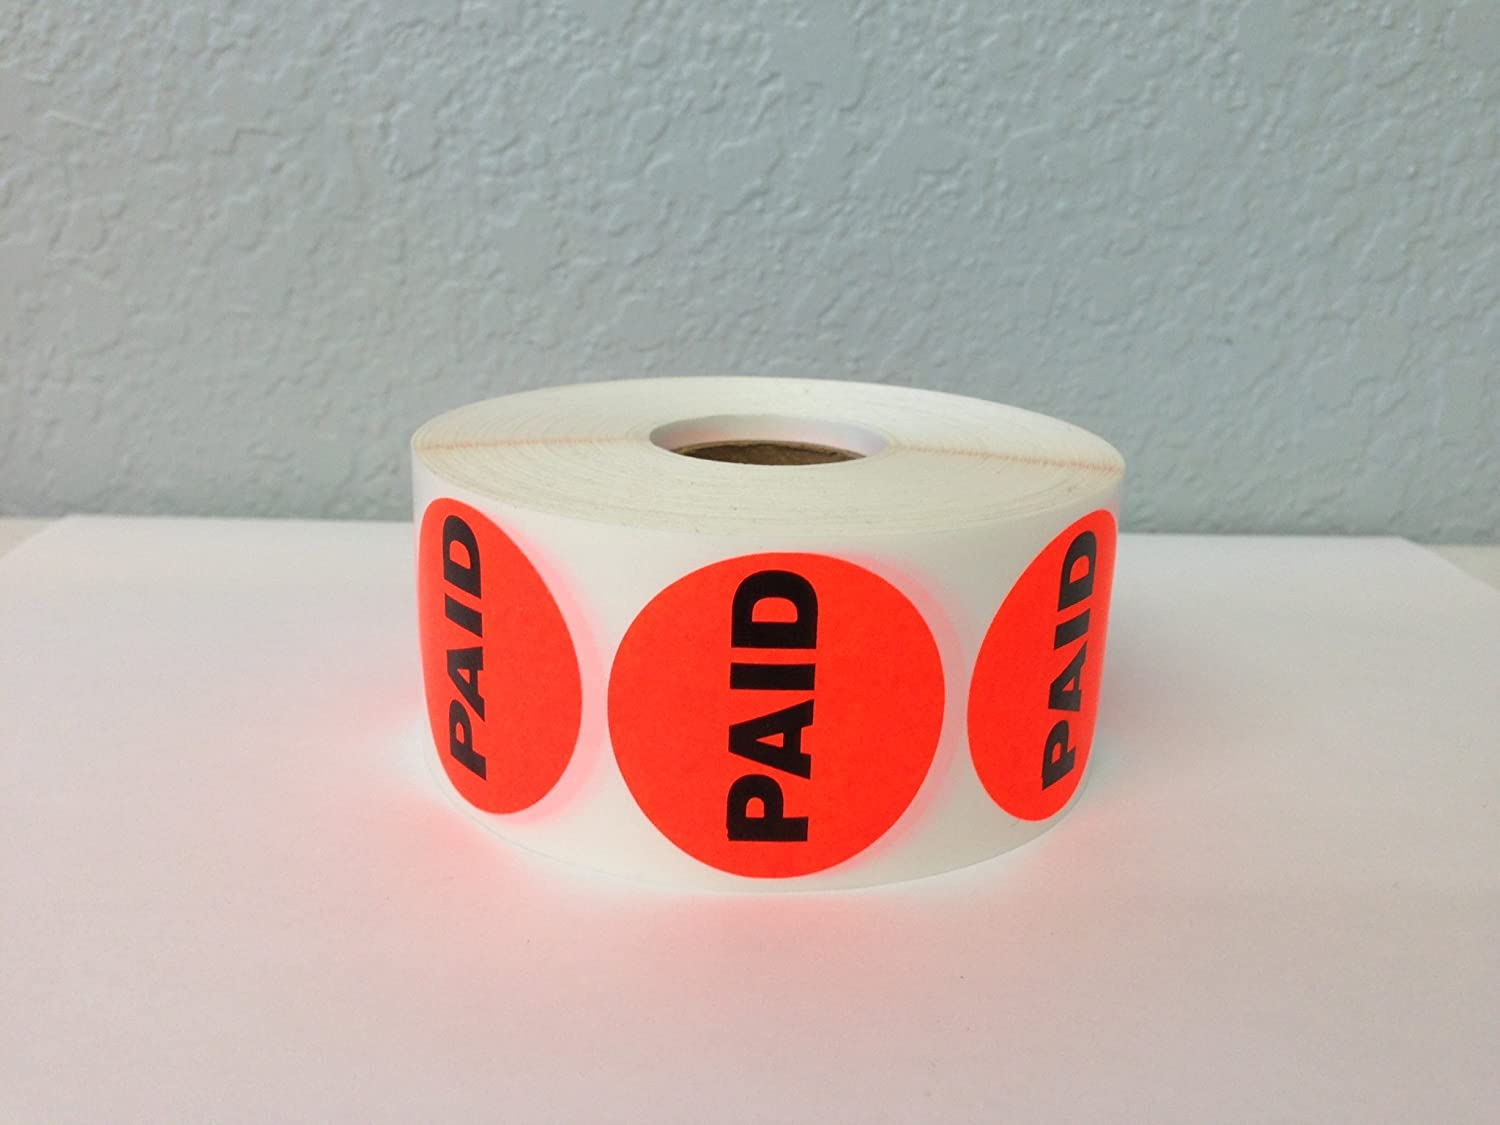 10, 000 Labels of the 1.5-inch Round Bright Red PAID Retail Price Point Labels Stickers (10 Rolls of 1, 000 Labels each Roll) Labels and More Inc.